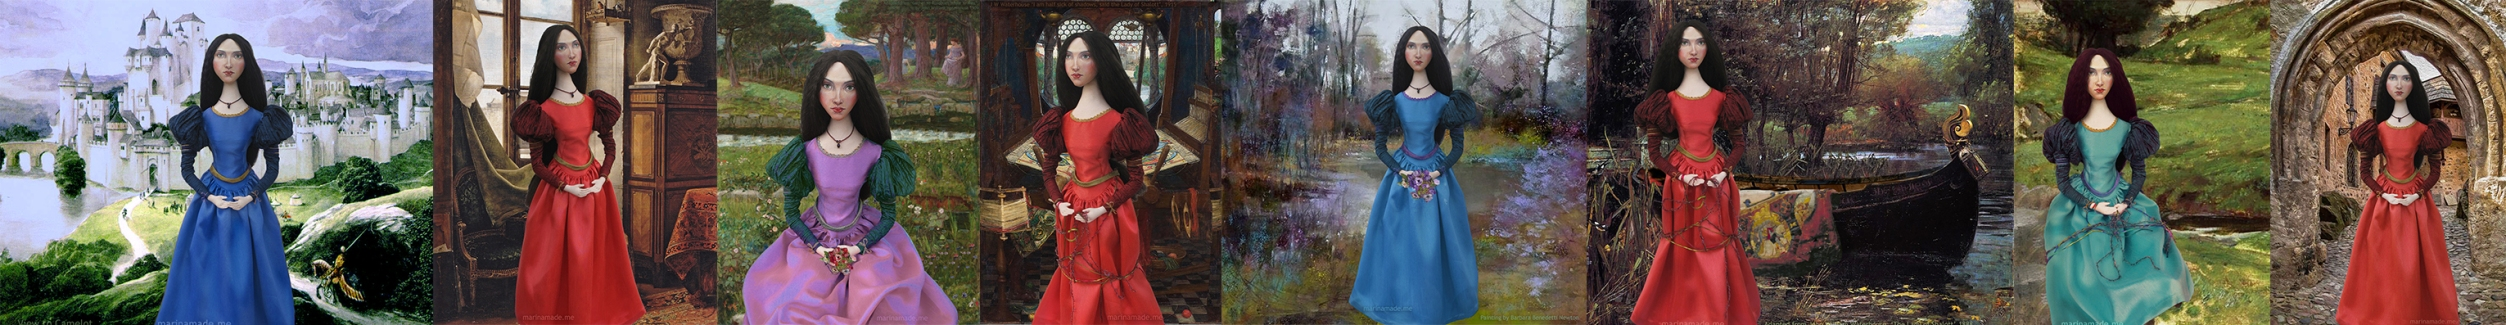 Muses of John William Waterhouse, interpreted by Marina Elphick for Marina's Muses.J.W.Waterhouse models and muses.